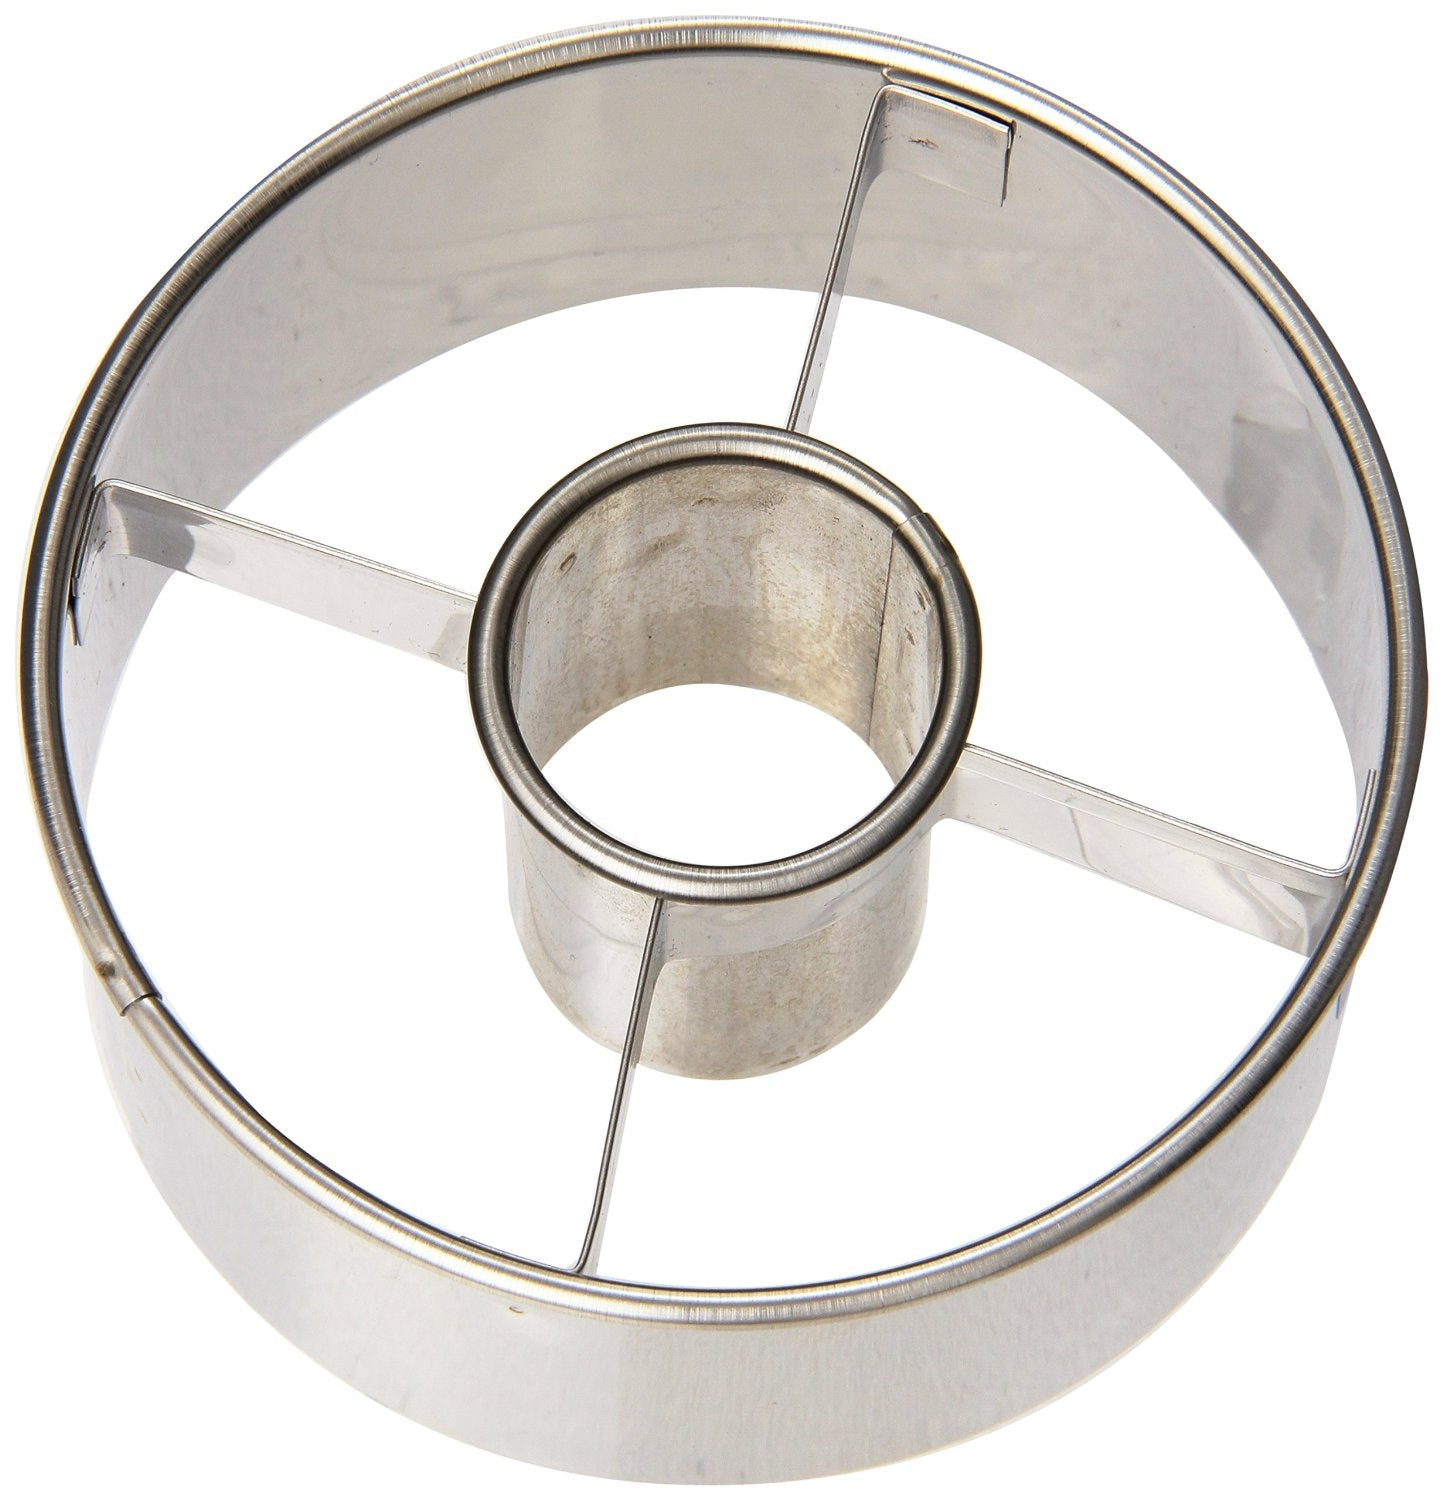 Ateco 14423 3-1/2-Inch Stainless Steel Doughnut Cutter